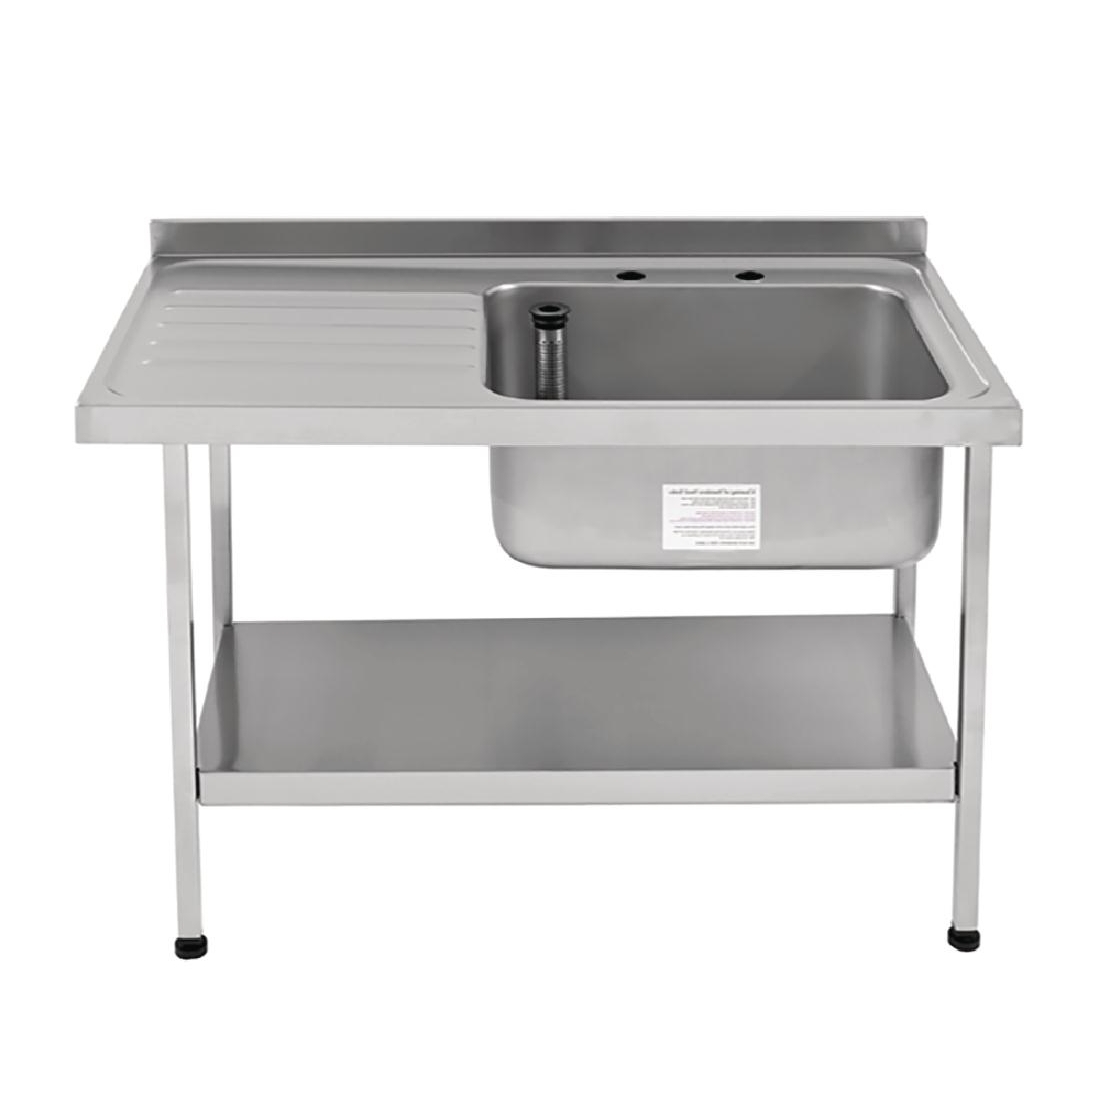 Franke Sissons Self Assembly Stainless Steel Sink Right Hand Bowl 1500x650mm